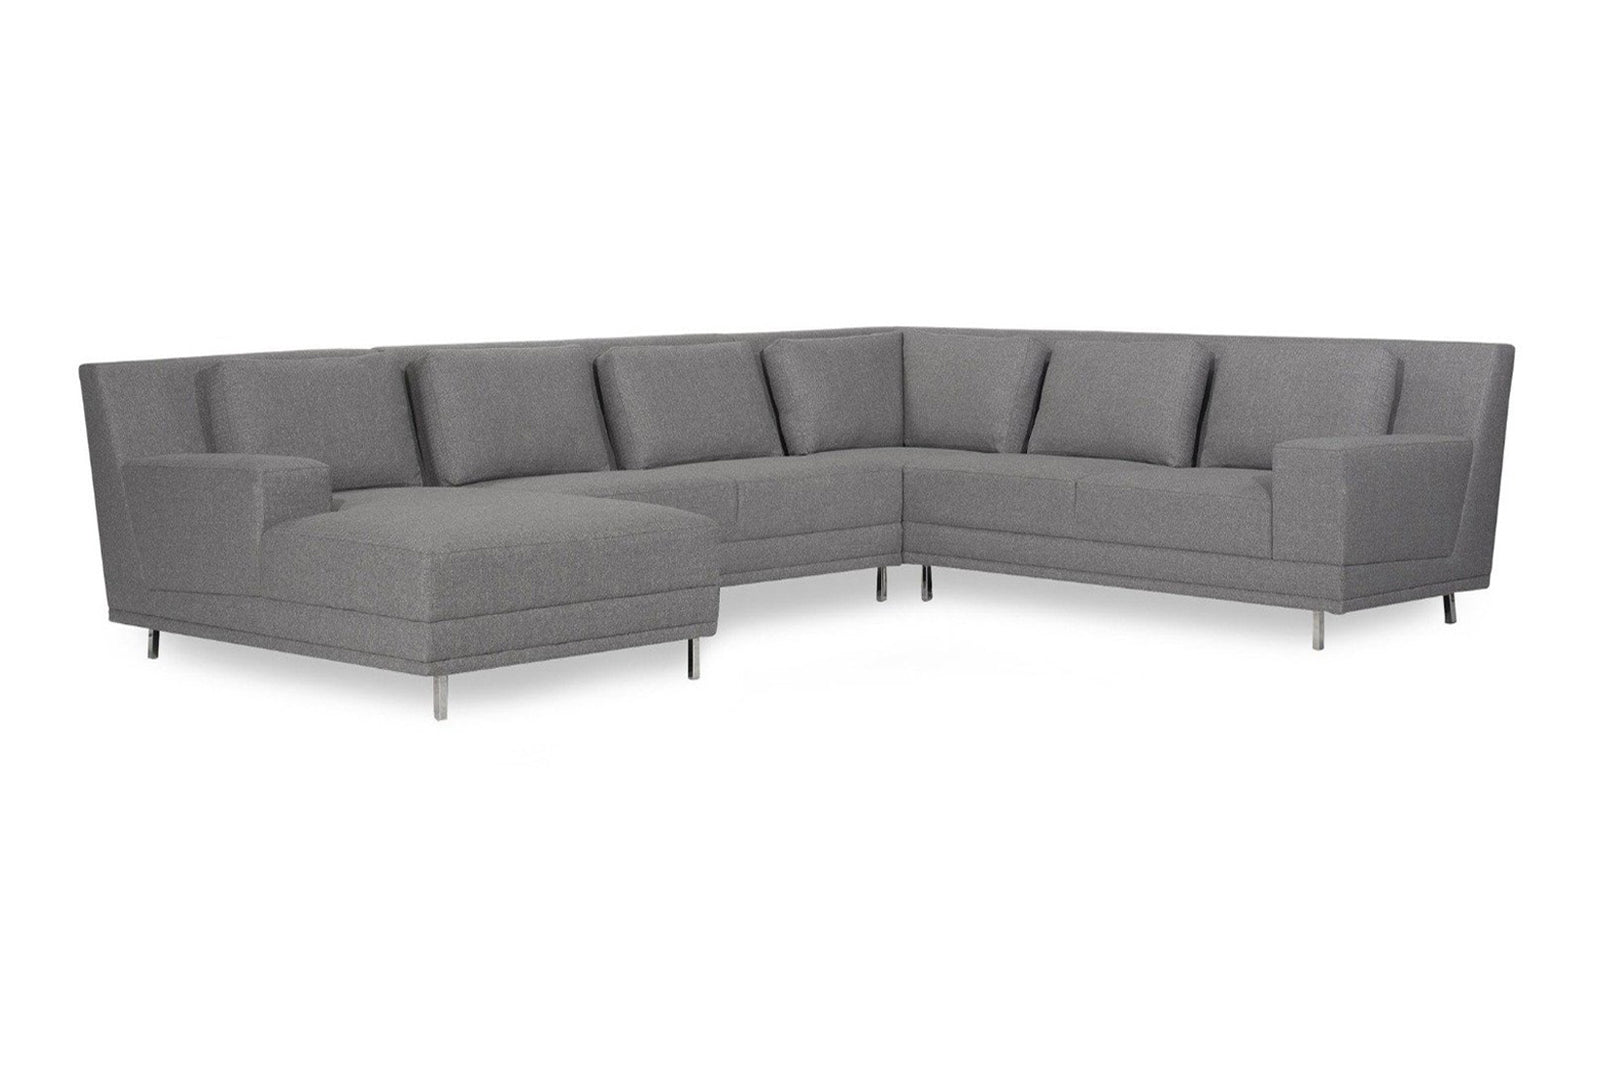 italian modula modular sectional in austin store five elements piazza sectional